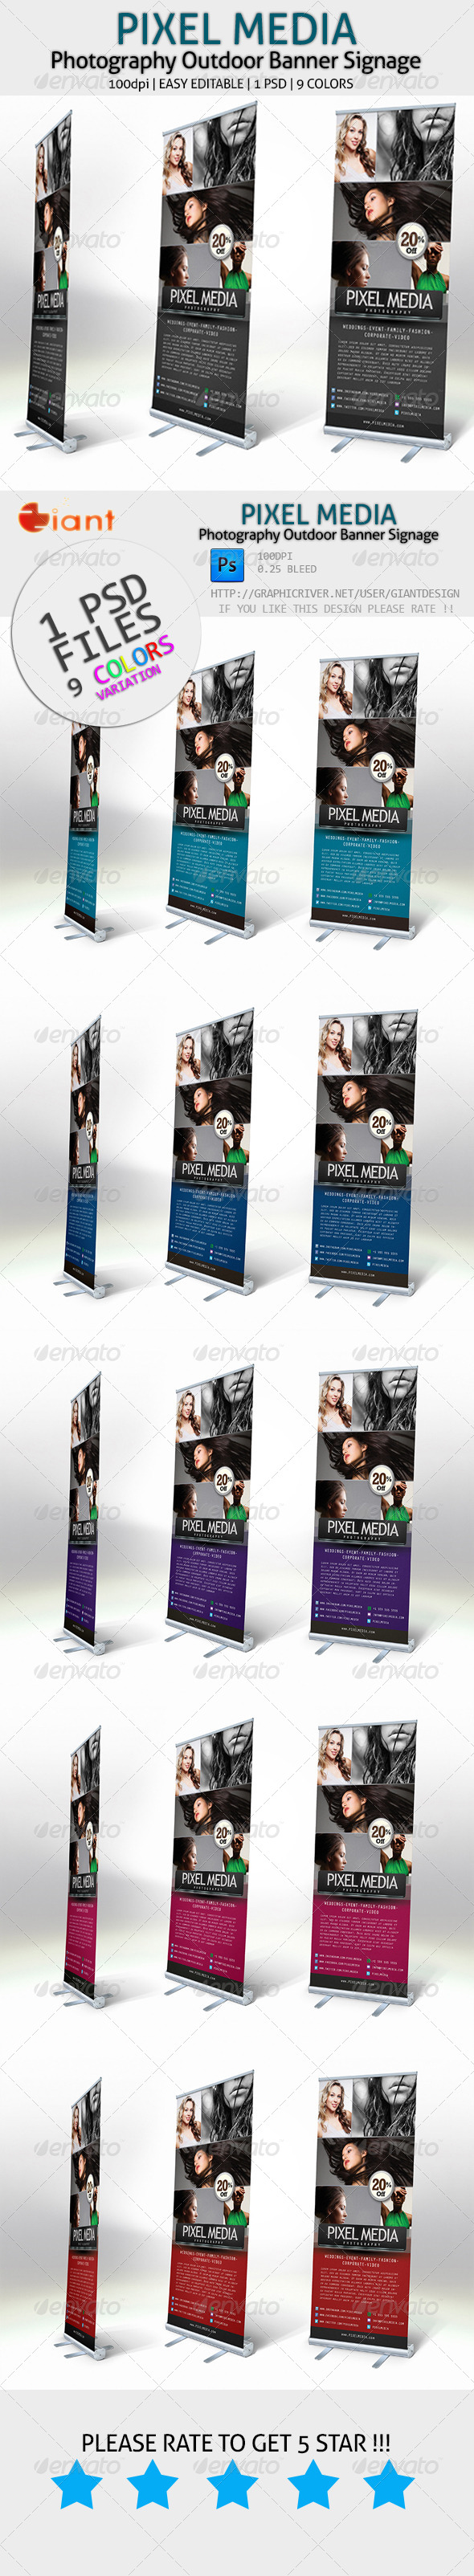 Pixel Media - Photography Outdoor Banner Signage